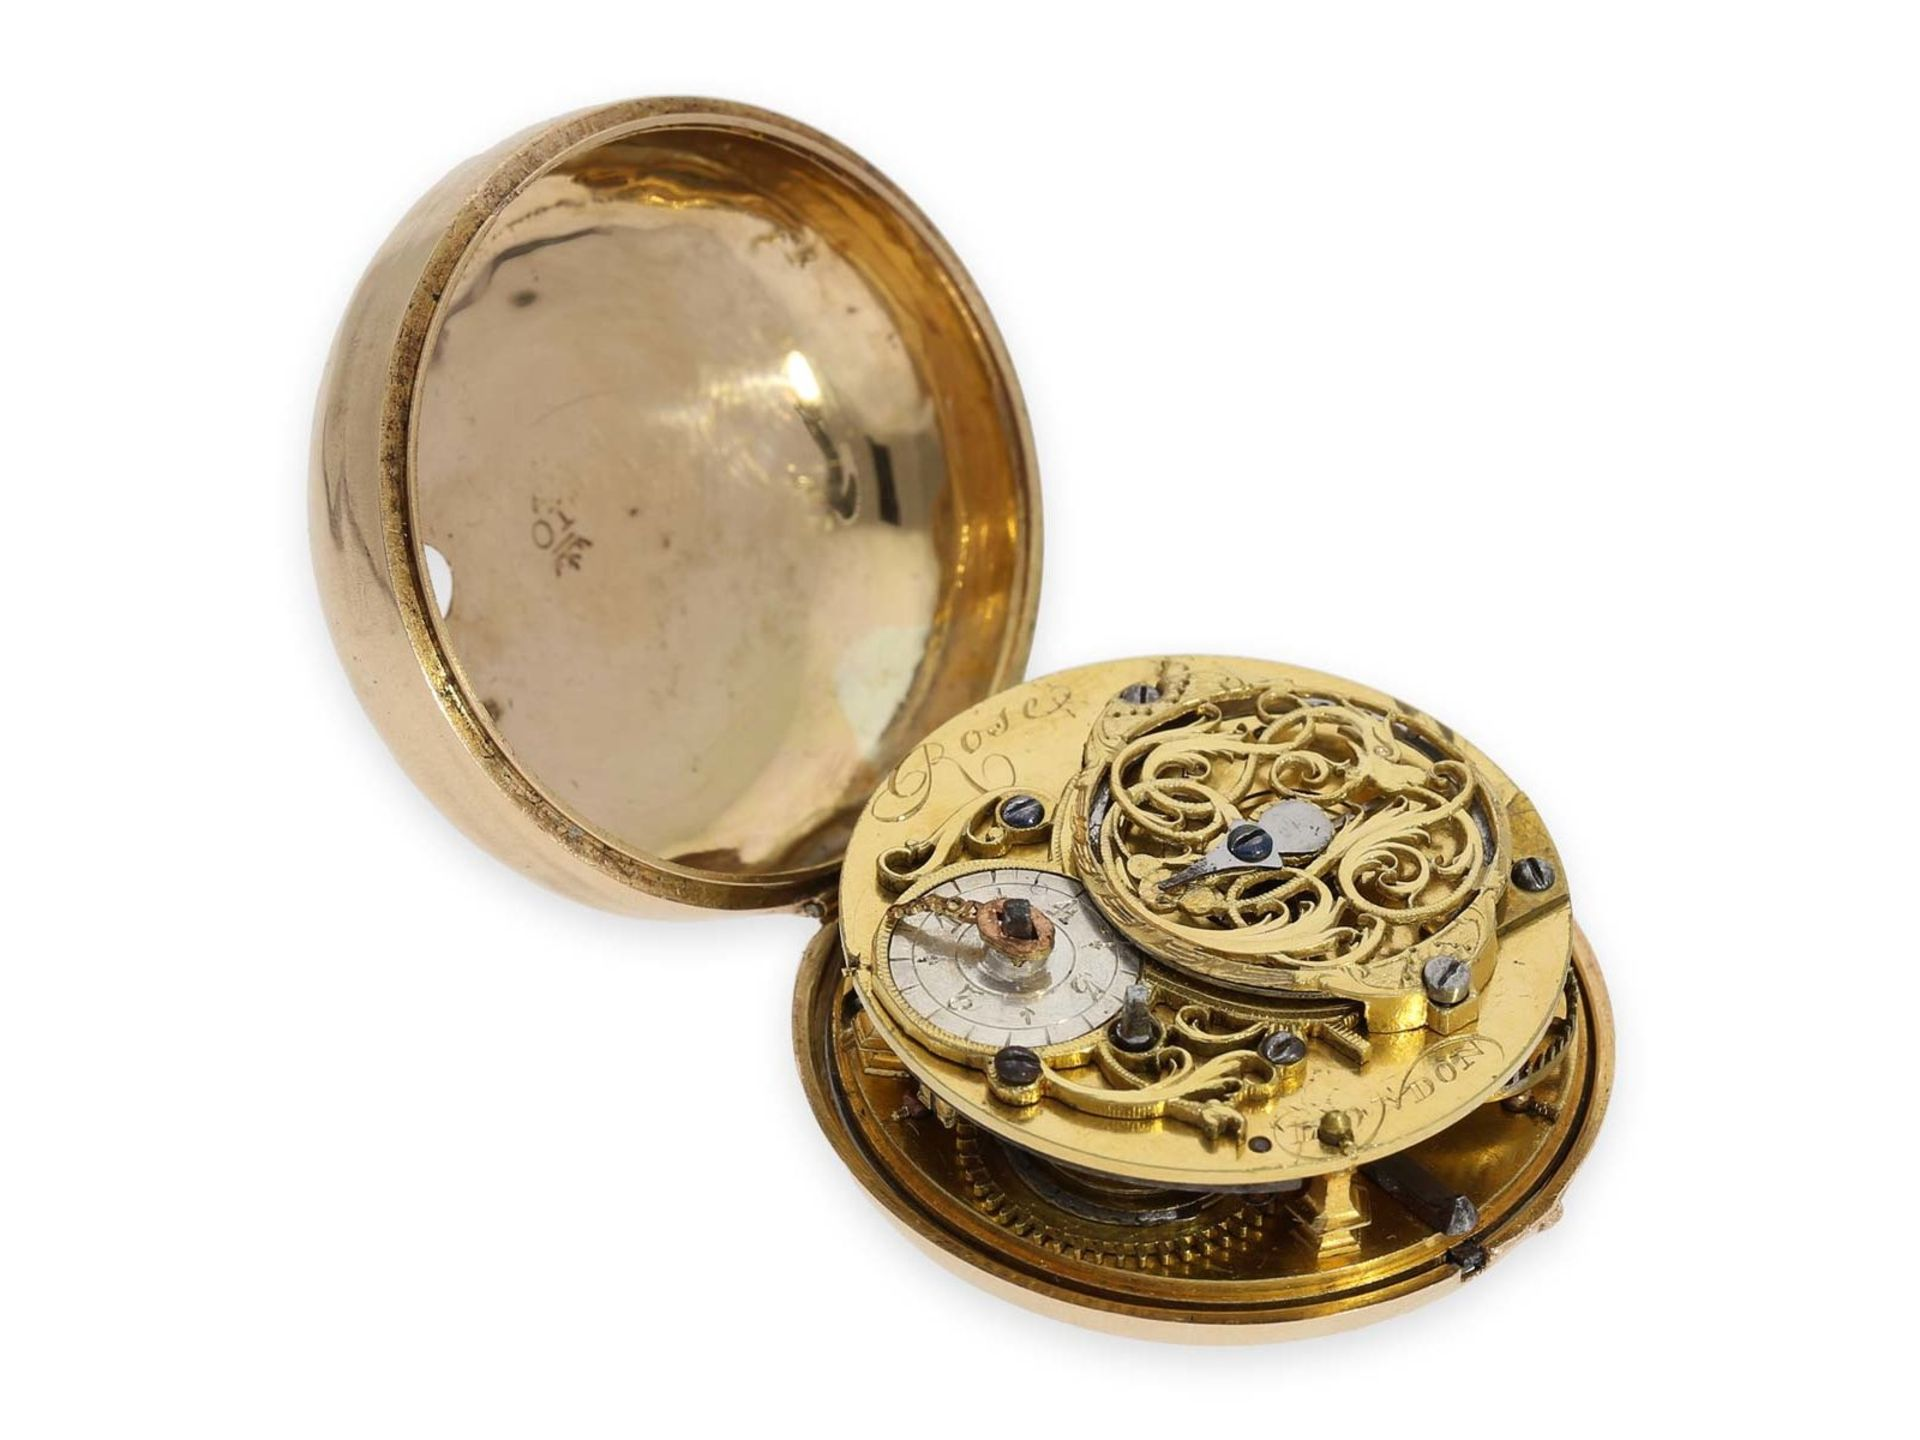 Pocket watch: early triple case gold repousse verge watch, signed Rose London, ca. 1770 - Bild 5 aus 8